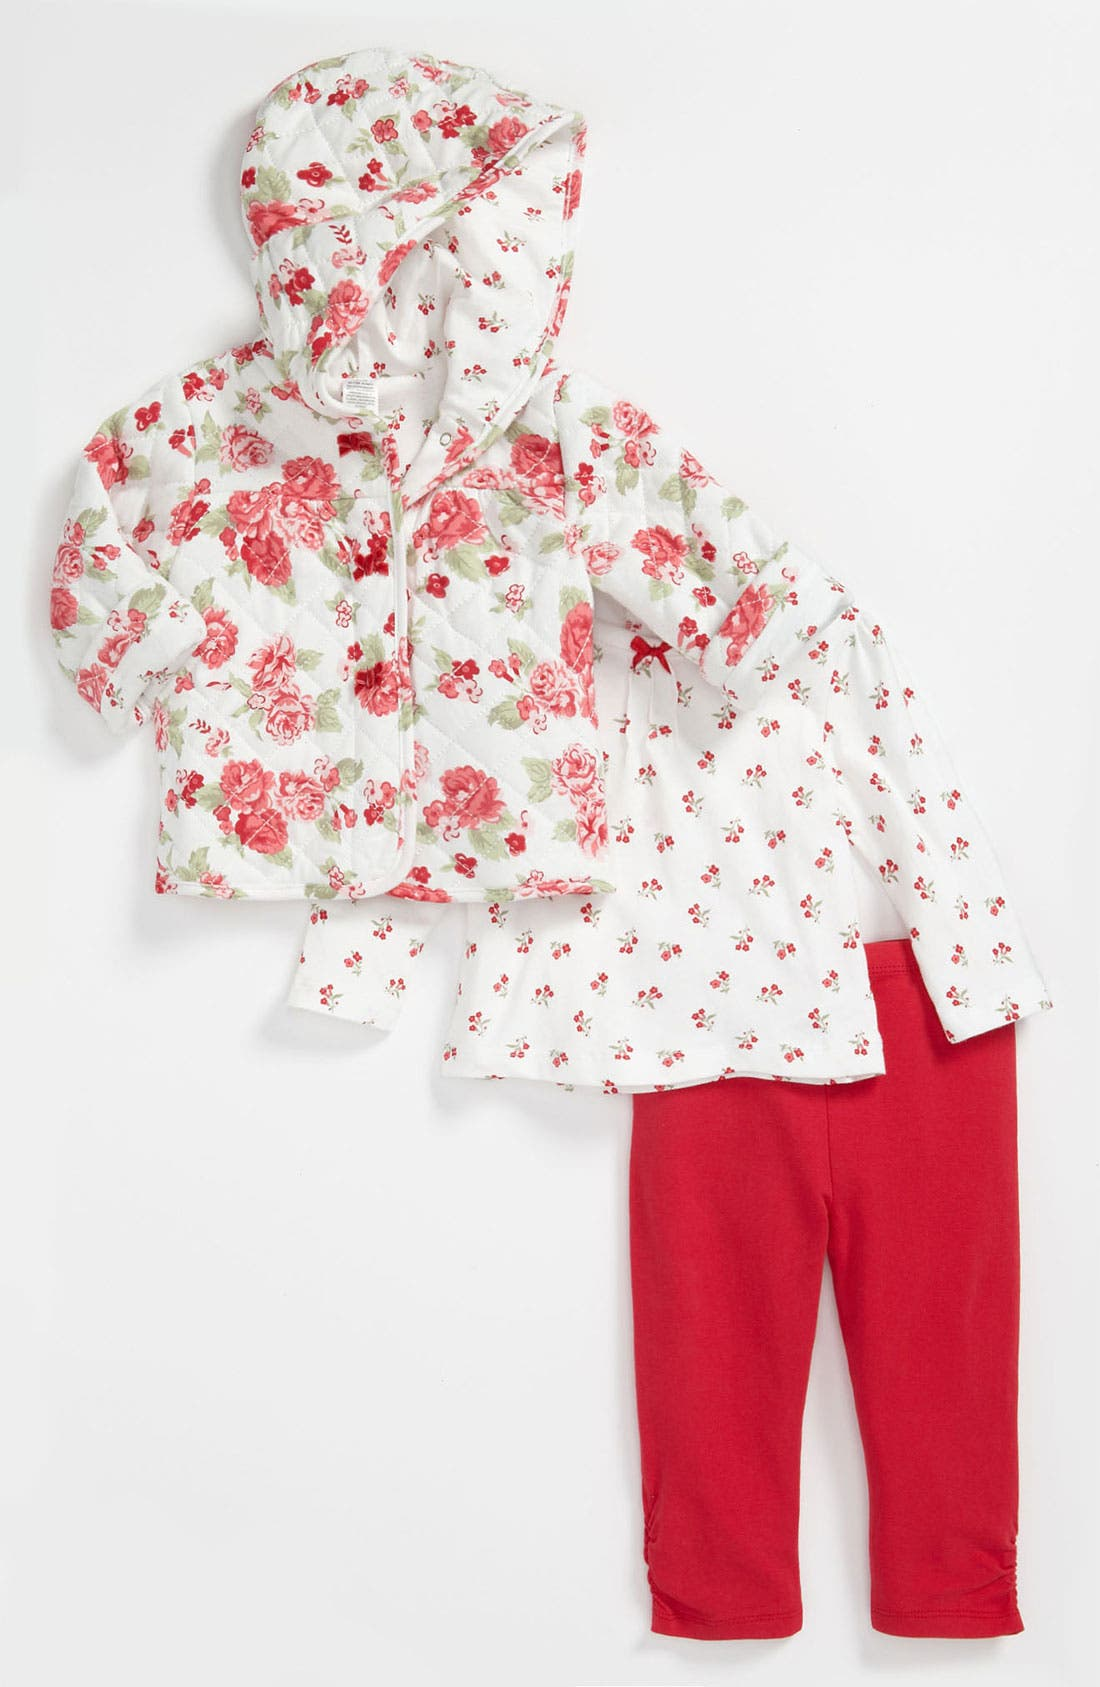 Alternate Image 1 Selected - Little Me 'Barberry Roses' Top, Pants & Jacket (Infant)